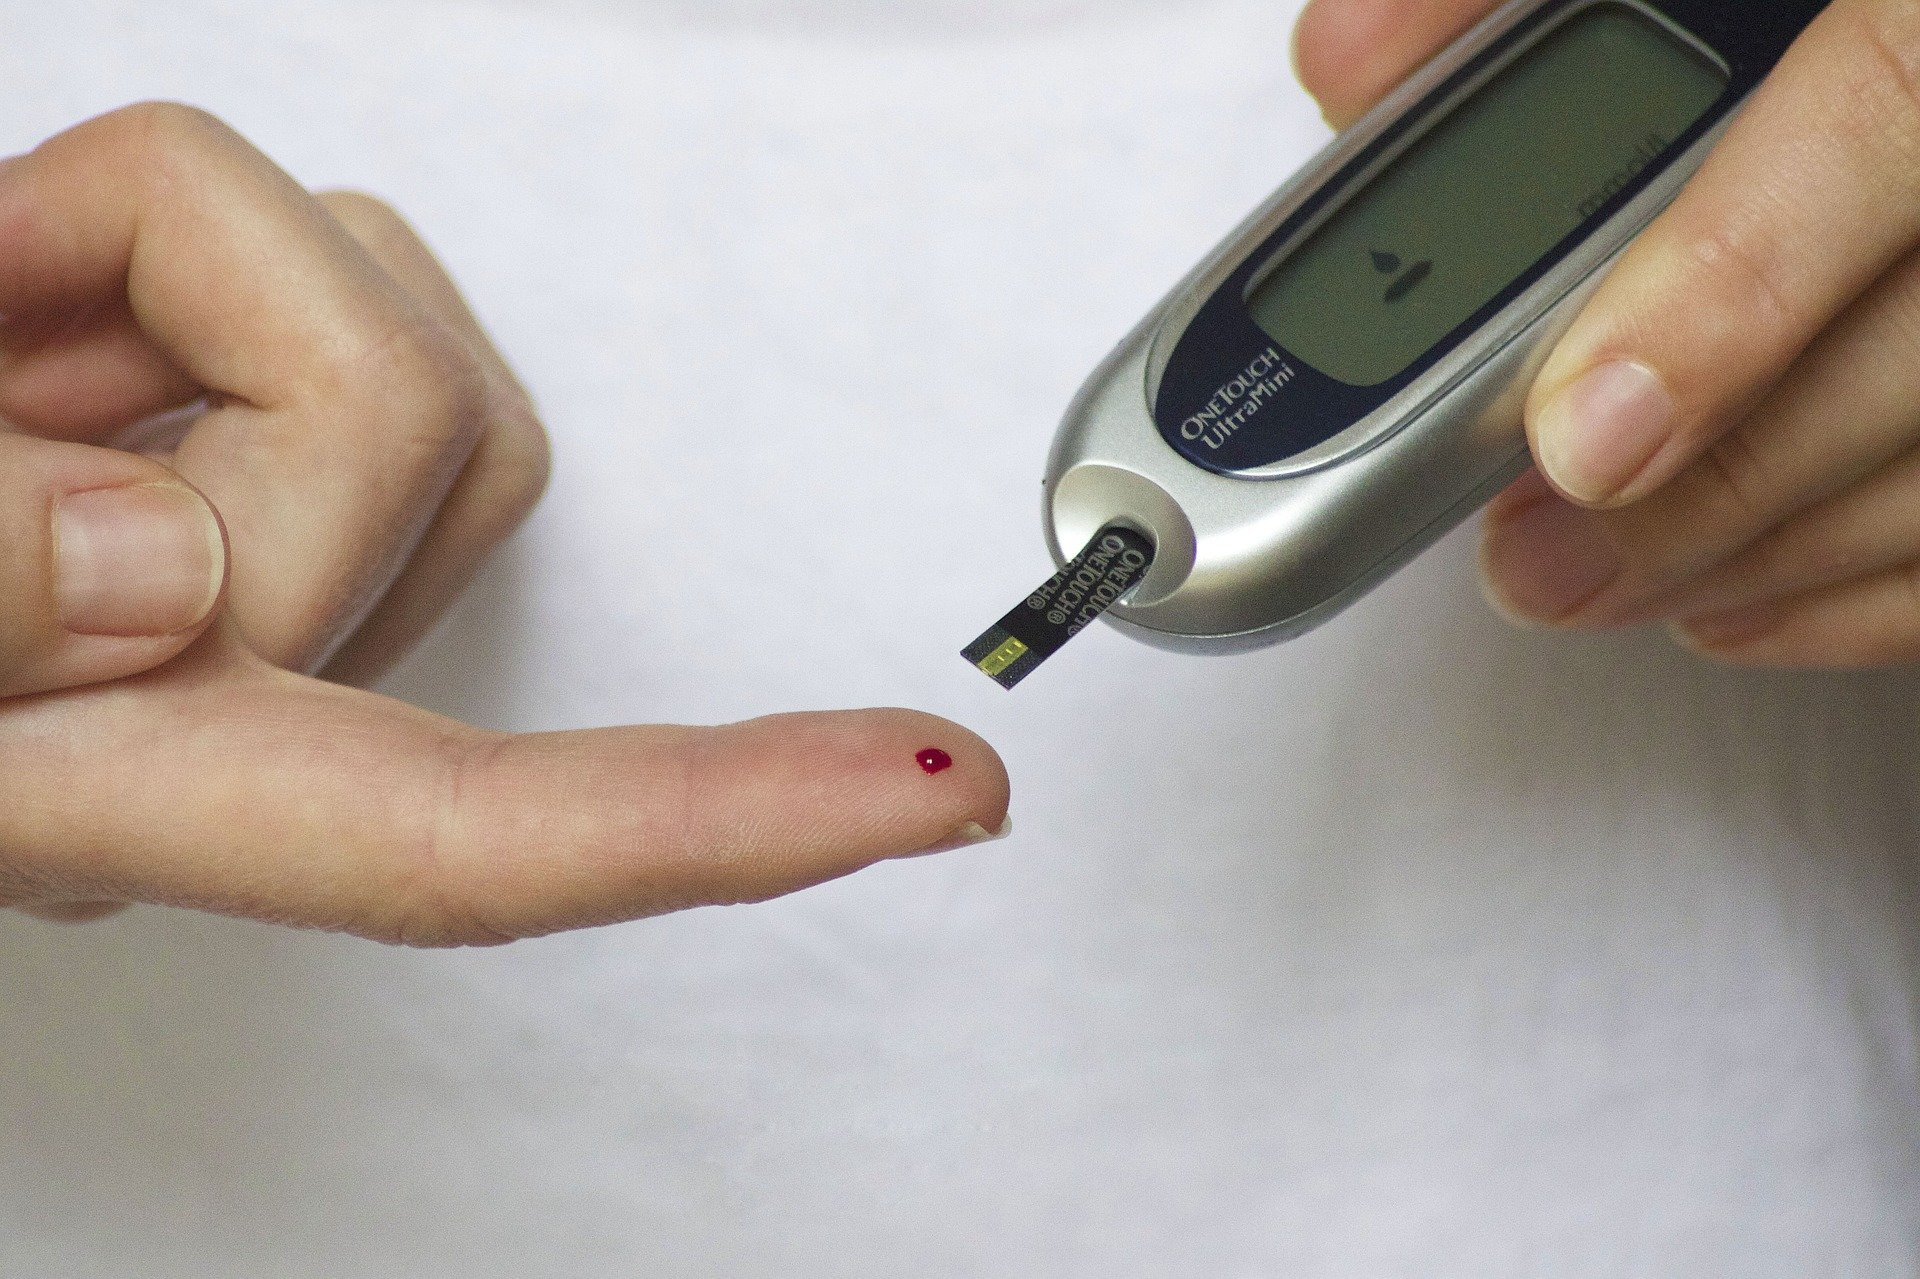 Patients Frequently Refuse Insulin Therapy, Delaying Blood Sugar Control